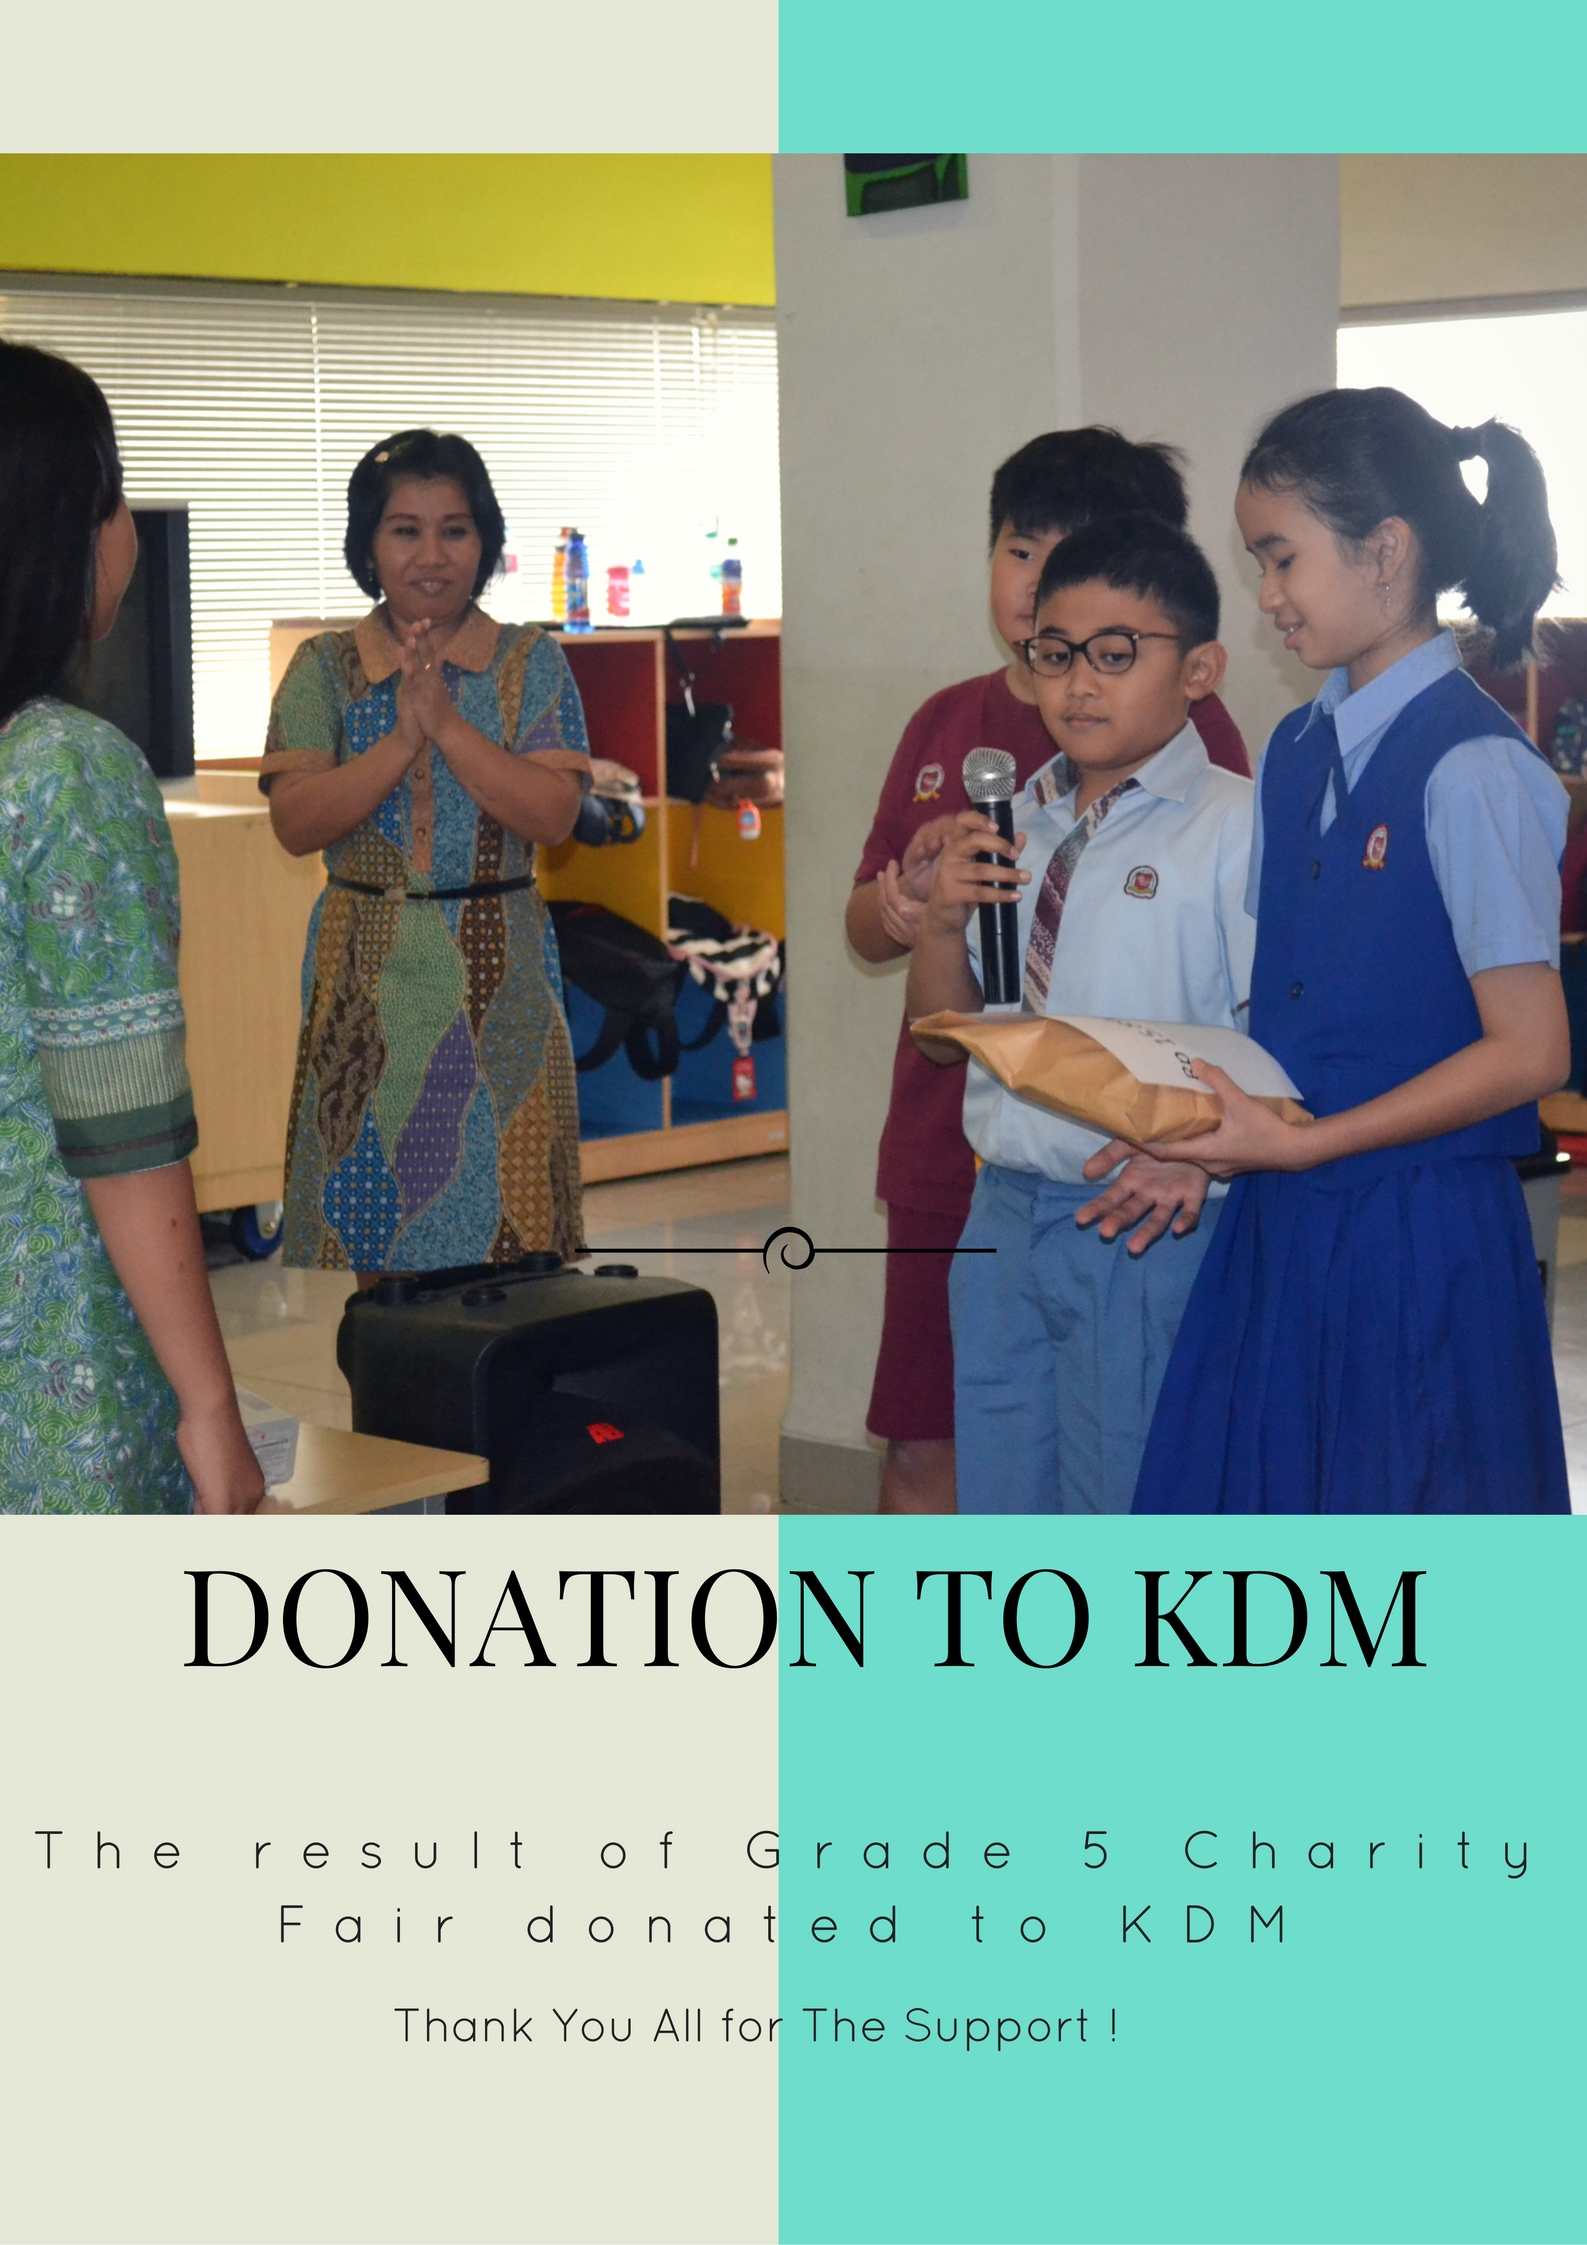 Donation to KDM